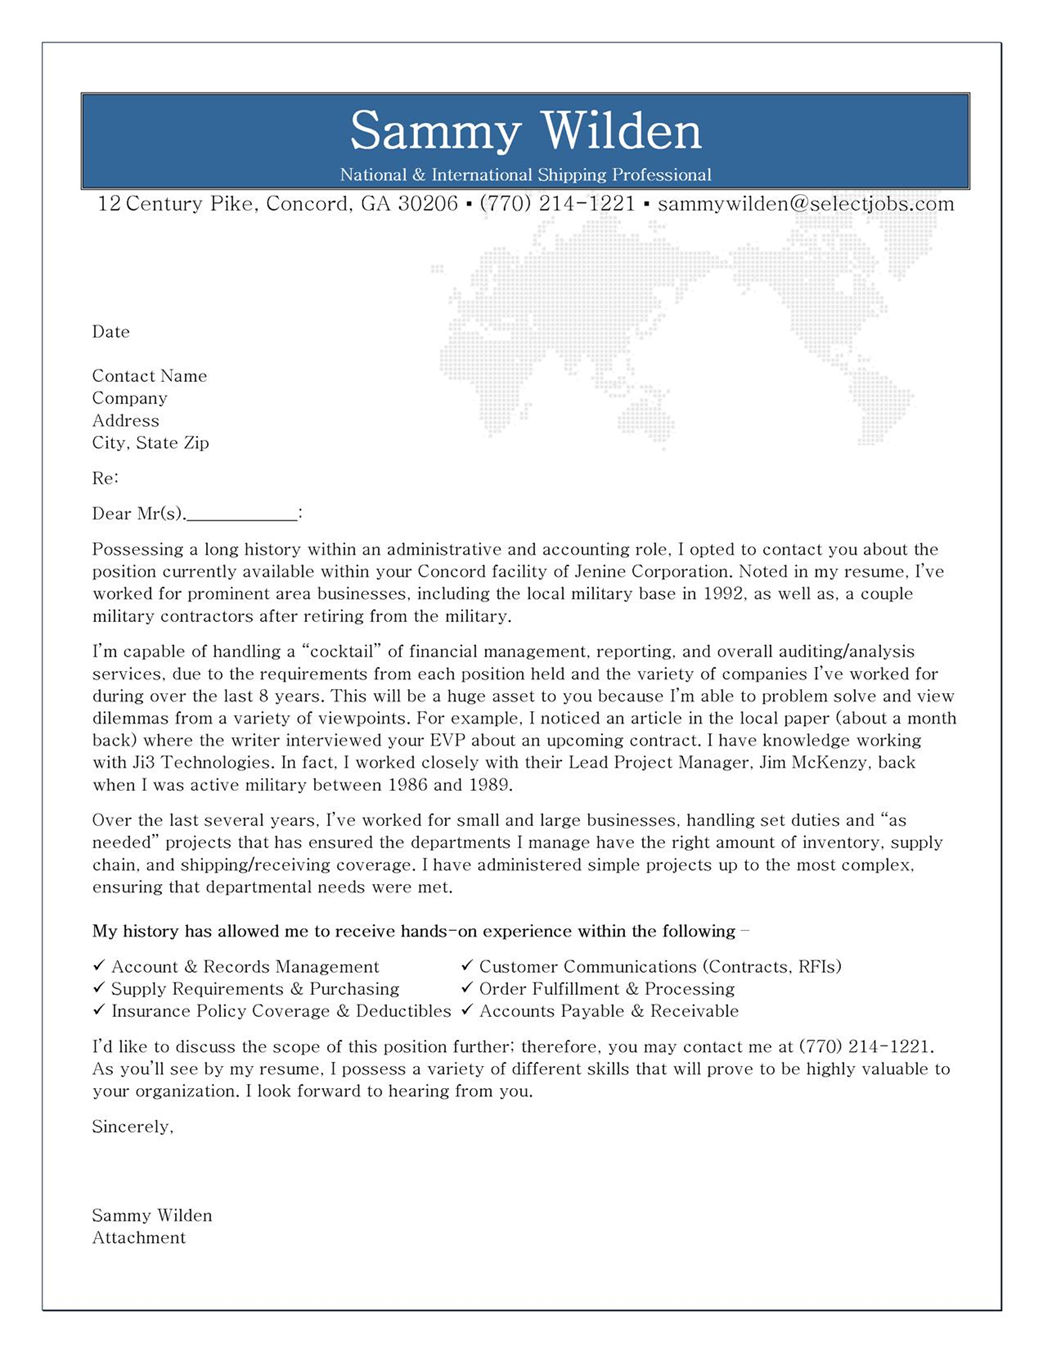 Unique Cover Letters Cover Letter Example For Shipping & Receiving Professional  Cover